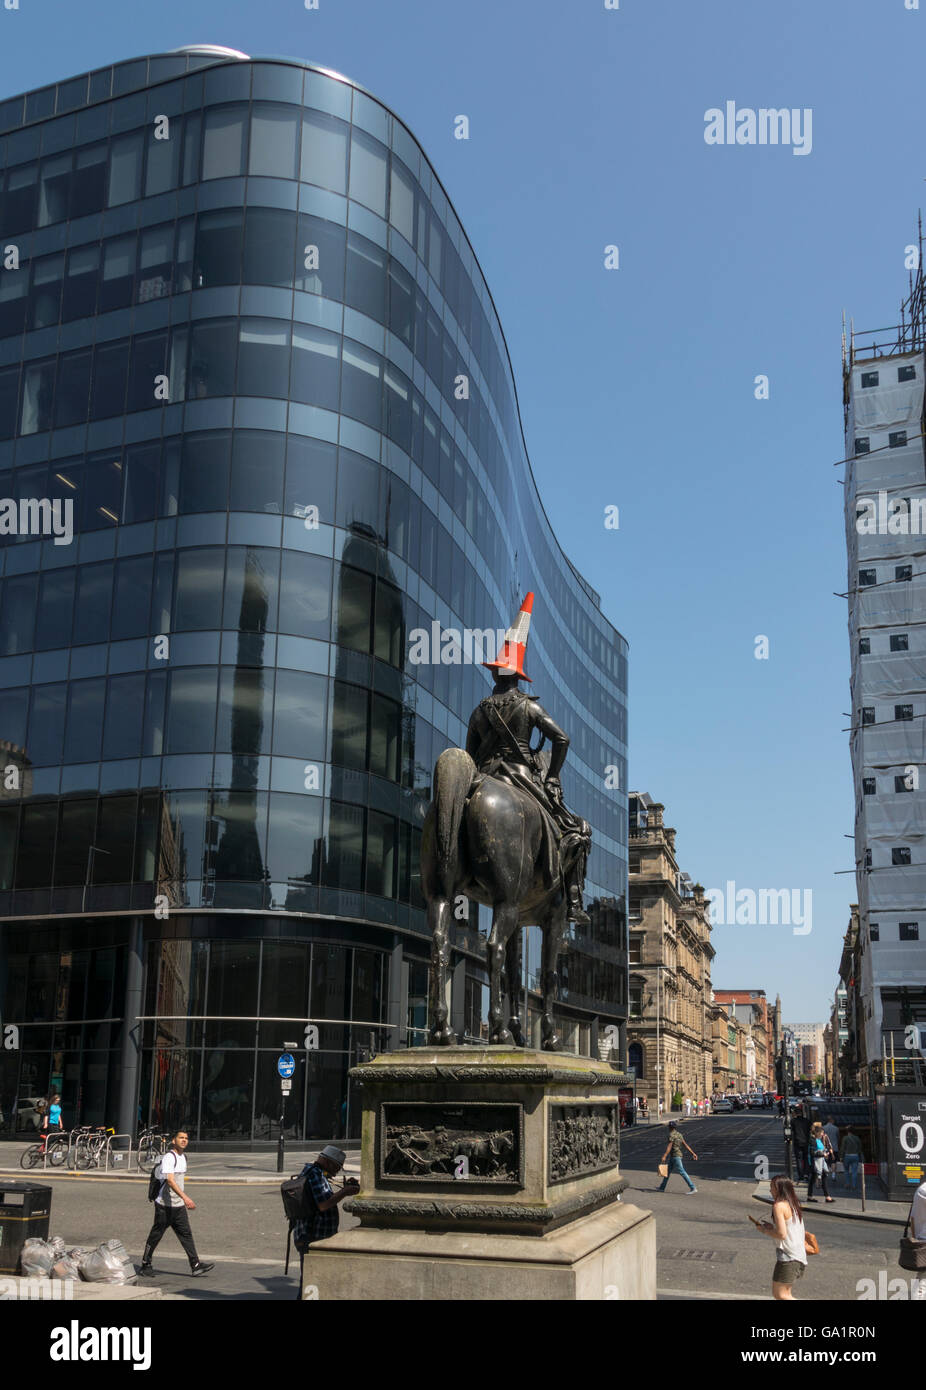 Statue of Duke of Wellington with traffic cone on head,and view down Ingram Street, Glasgow, Scotland, UK, - Stock Image